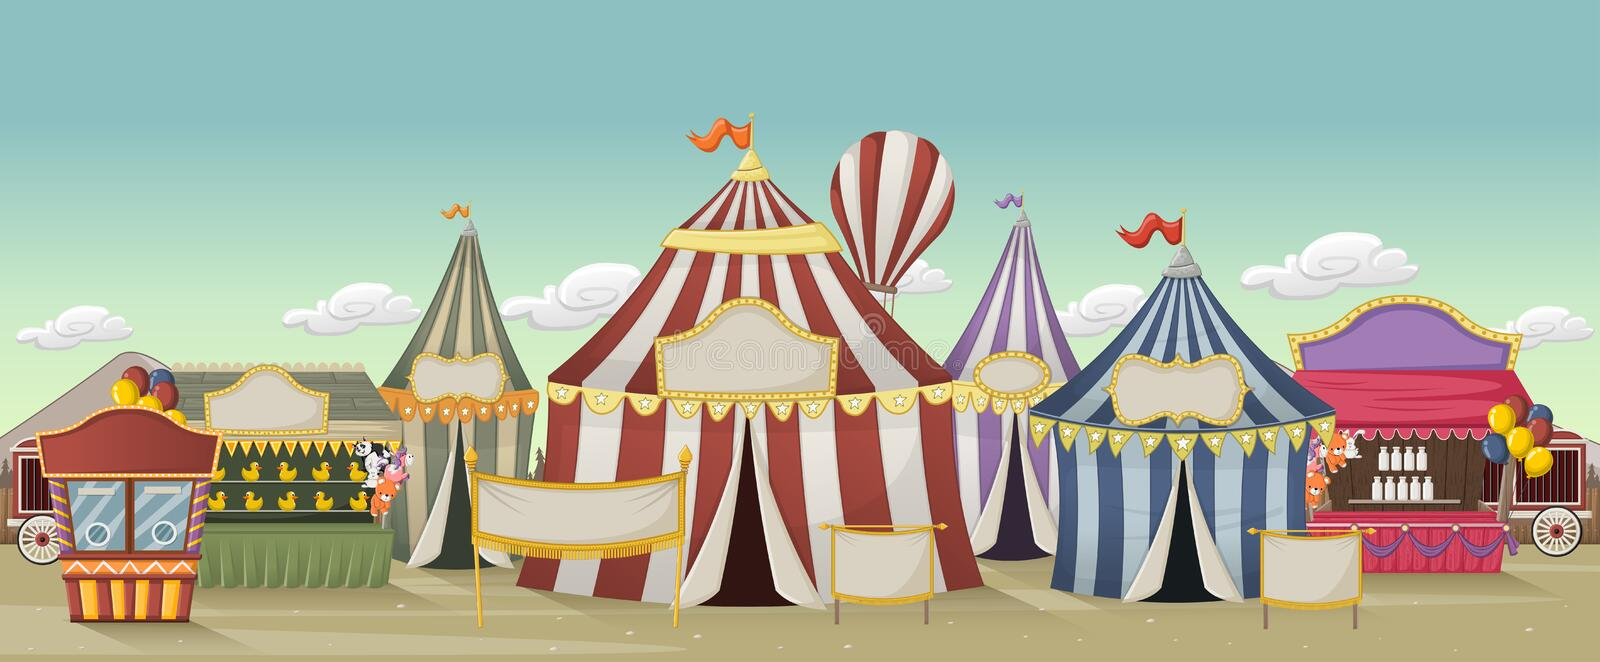 Download Retro Cartoon Circus With Tents. Stock Vector - Illustration of game park  sc 1 st  Dreamstime.com & Retro Cartoon Circus With Tents. Stock Vector - Illustration of ...